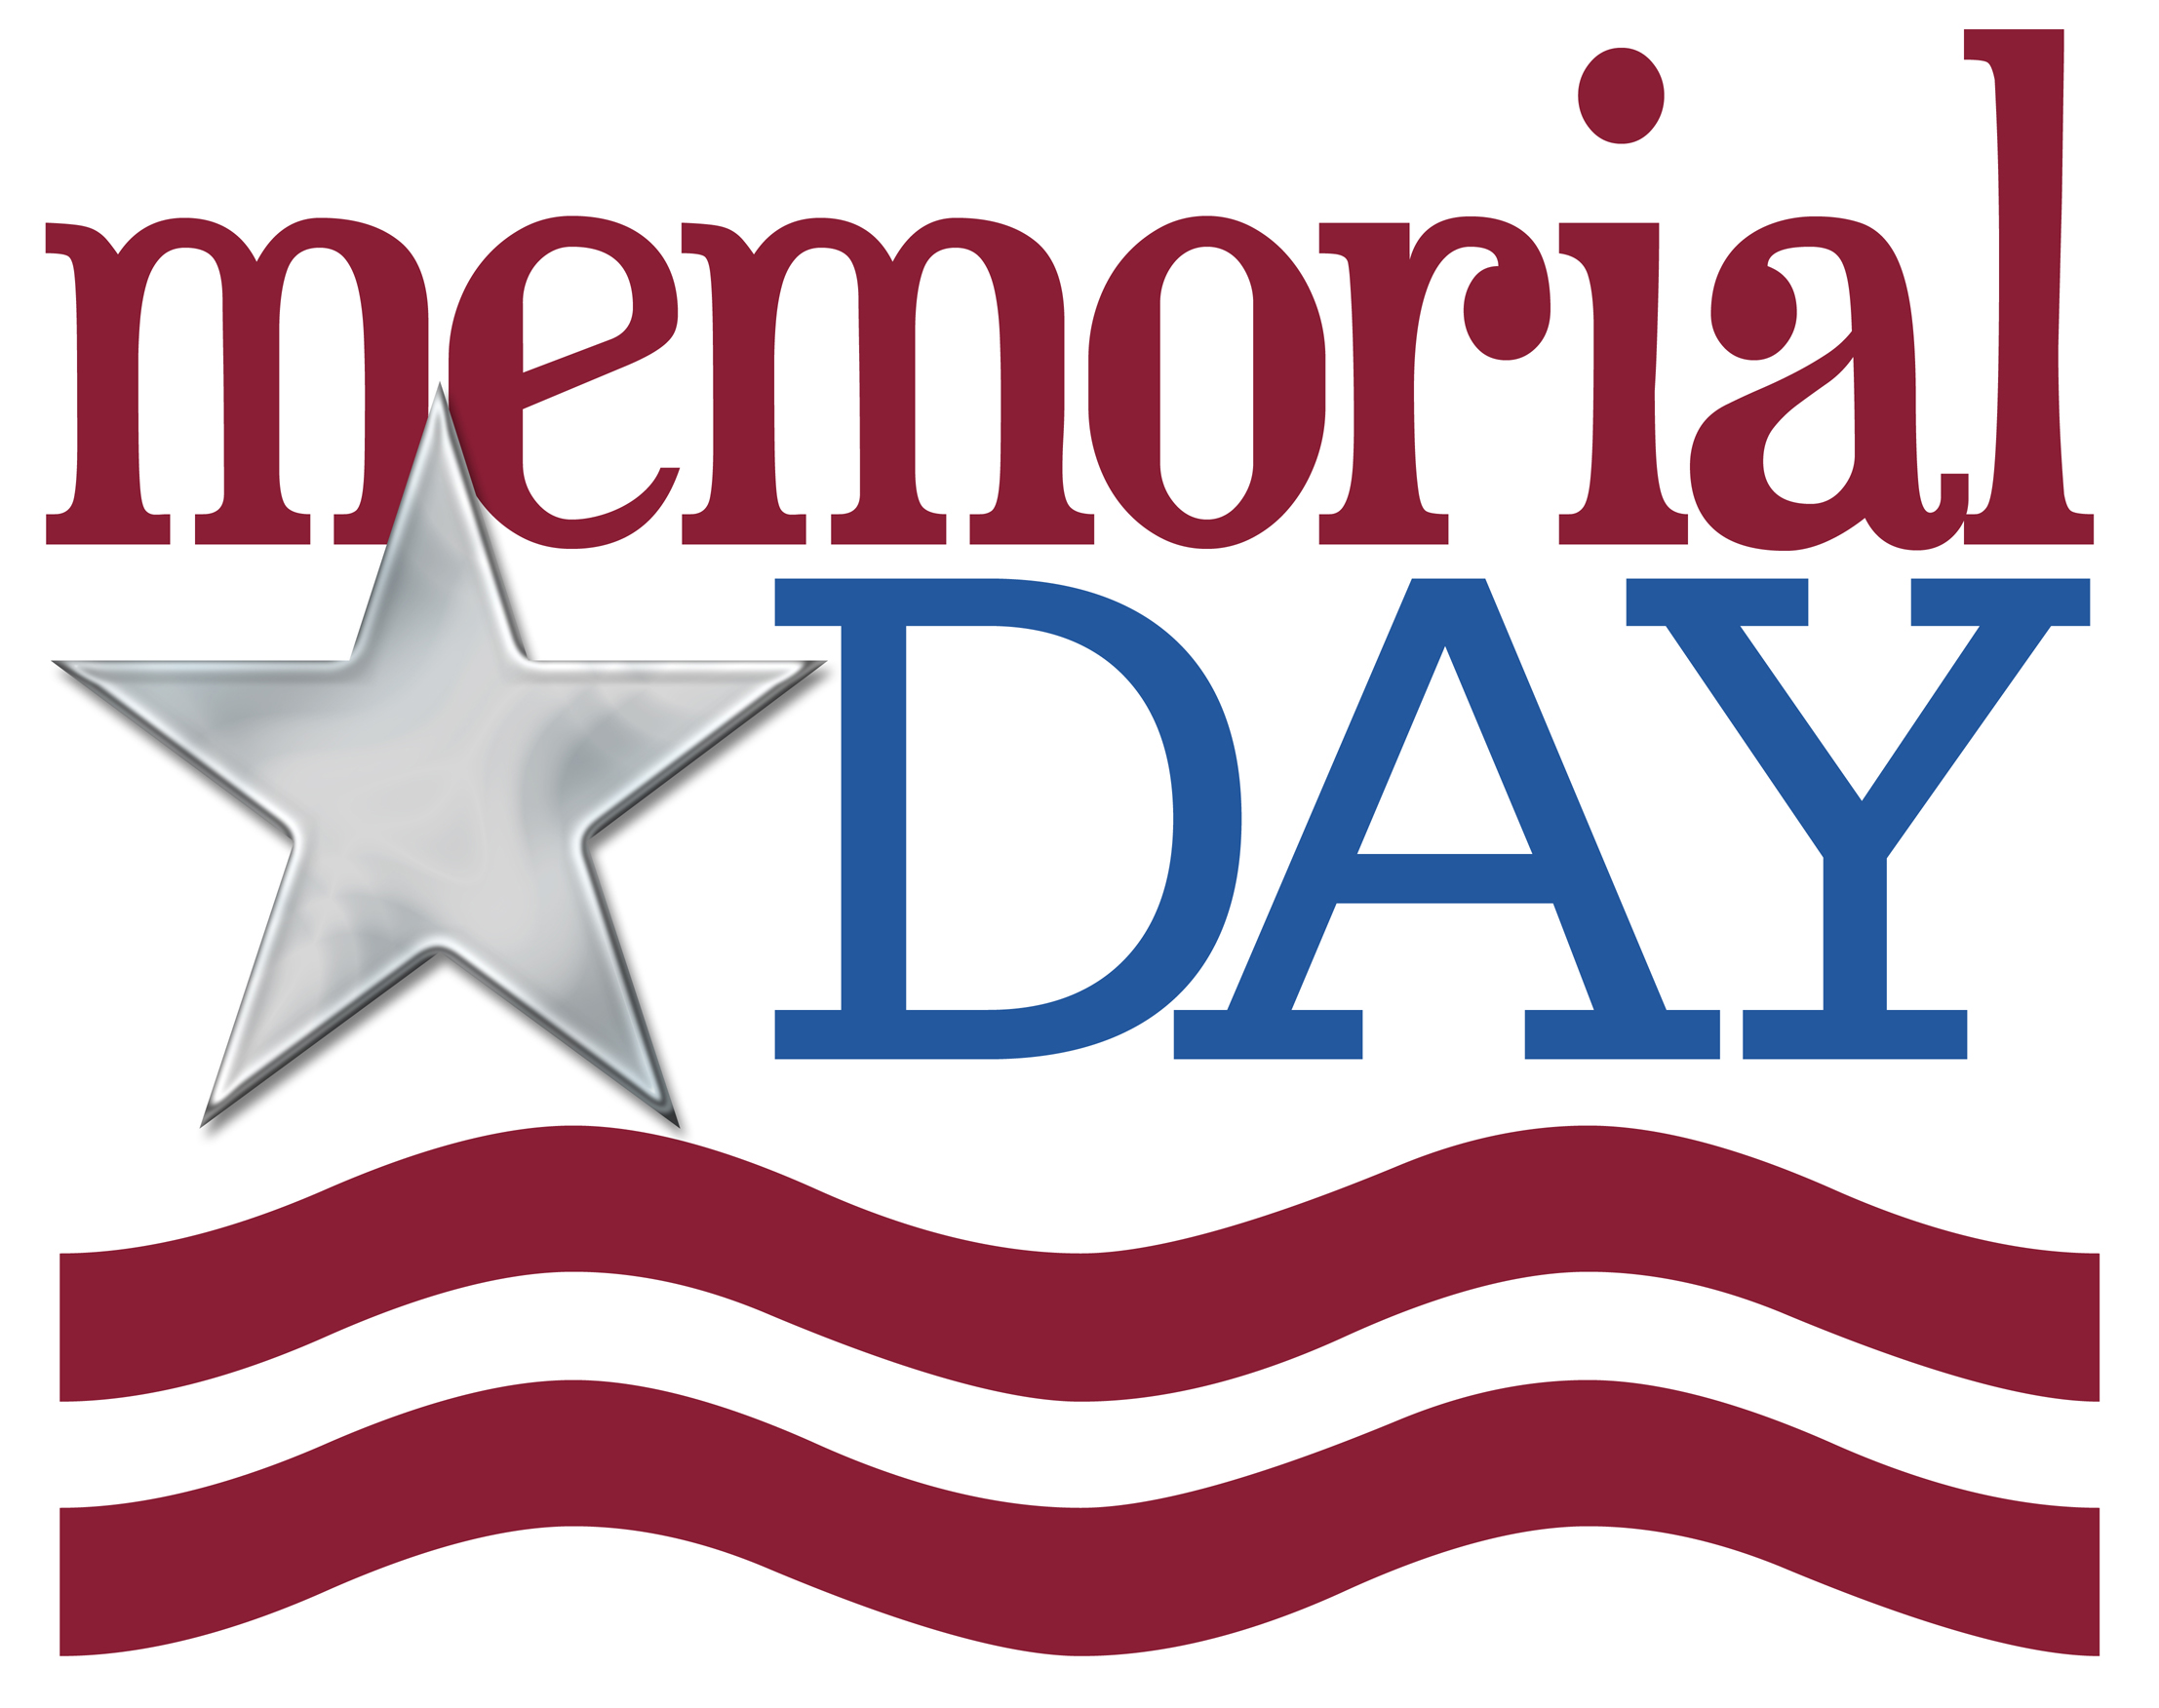 memorial day clipart clipart panda free clipart images rh clipartpanda com memorial day clipart 2018 memorial day clipart for kids